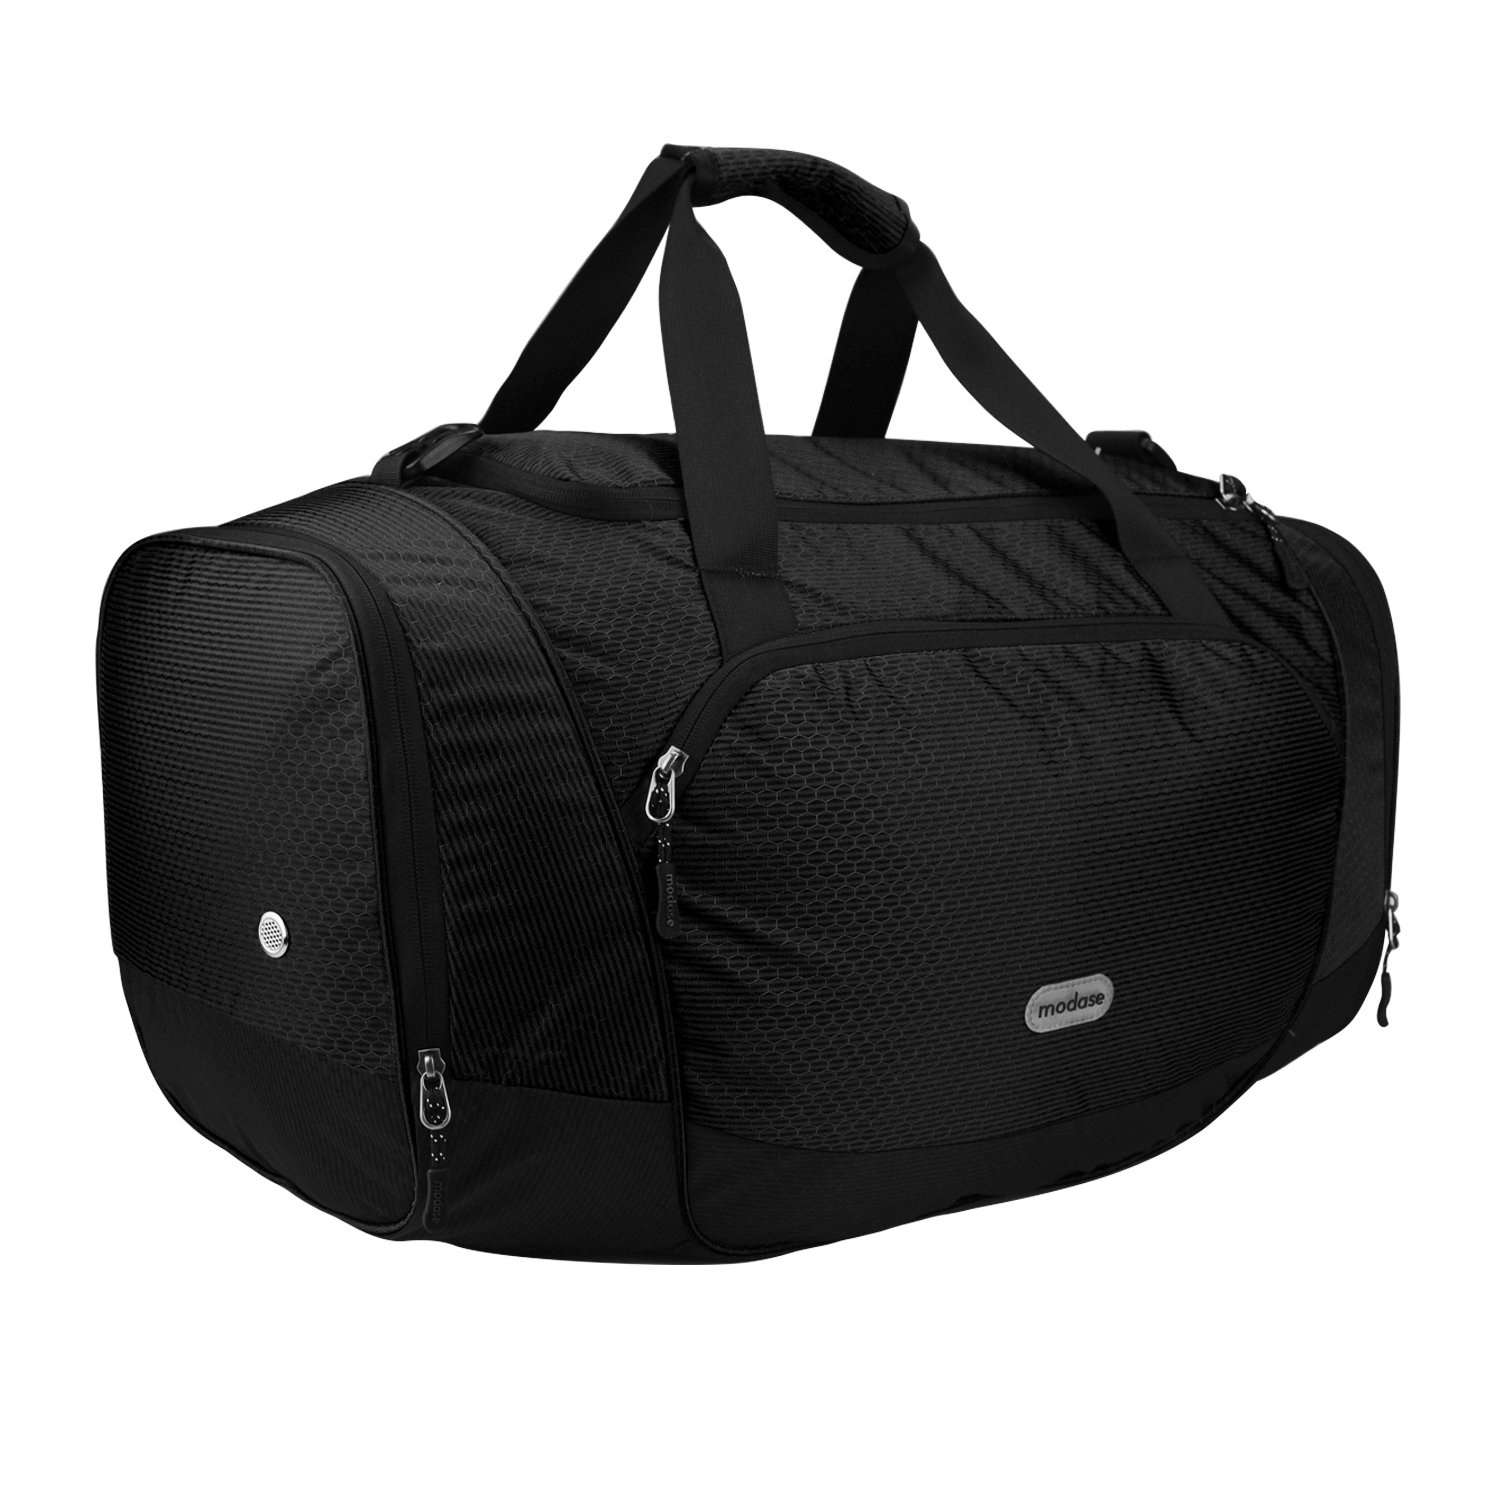 Amazon.com  modase Duffel Bag Gym Bag Travel Duffle Luggage Sport Bag with  Shoe Compartment  Sports   Outdoors e81f8f9bd2954